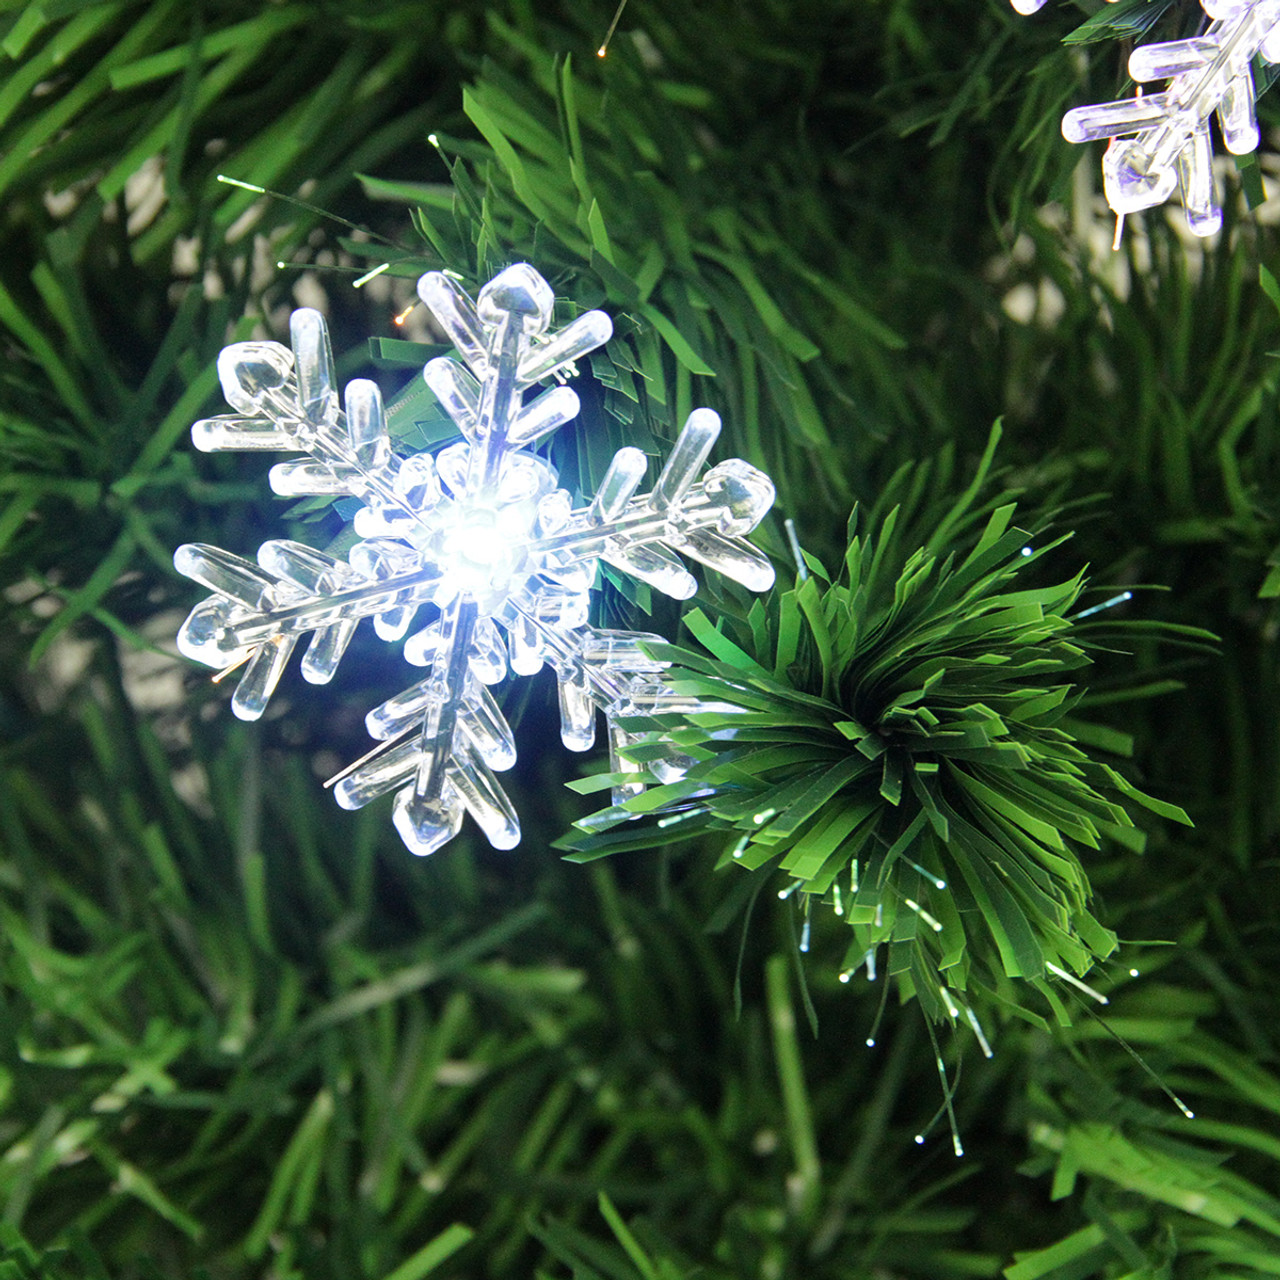 3u0027 Pre Lit Color Changing Fiber Optic Christmas Tree With Snowflakes    31466432